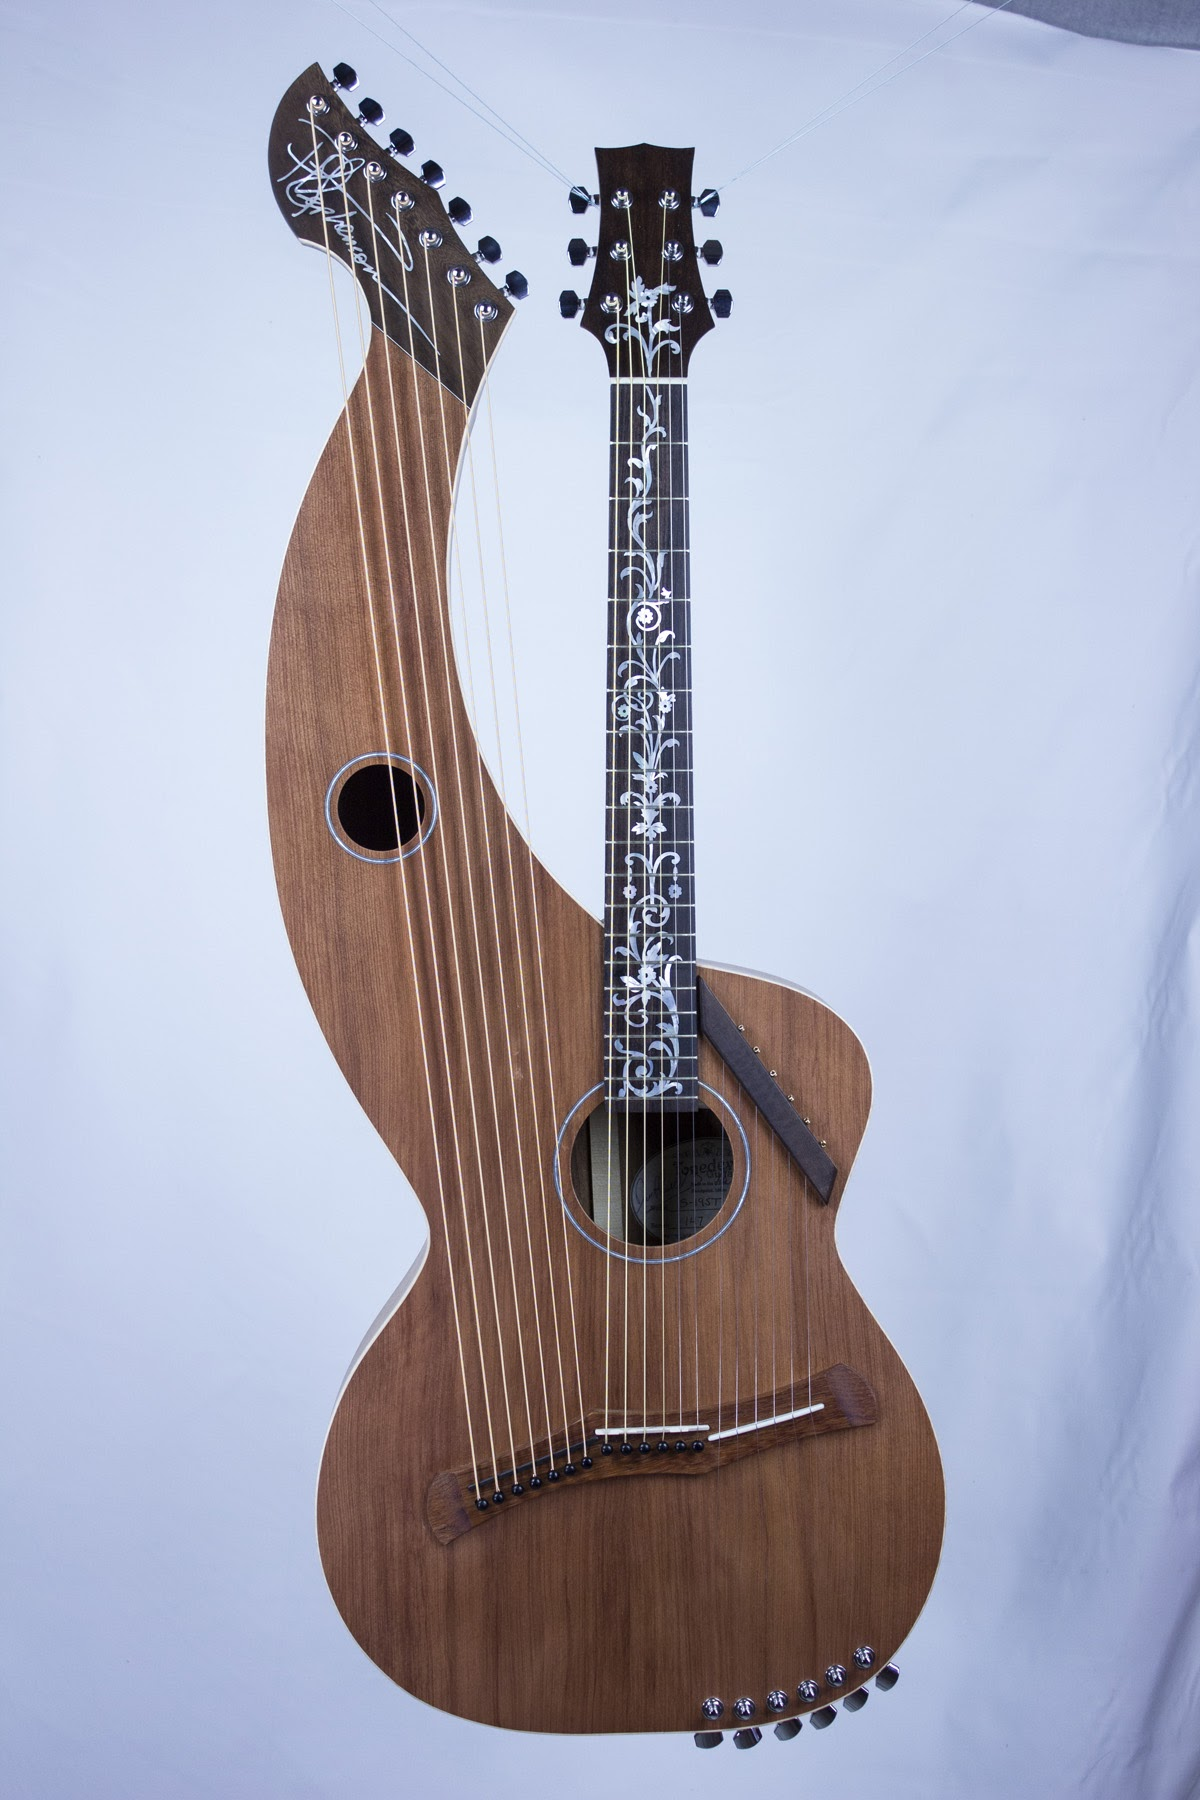 Deluxe redwood top harp guitar with super trebles